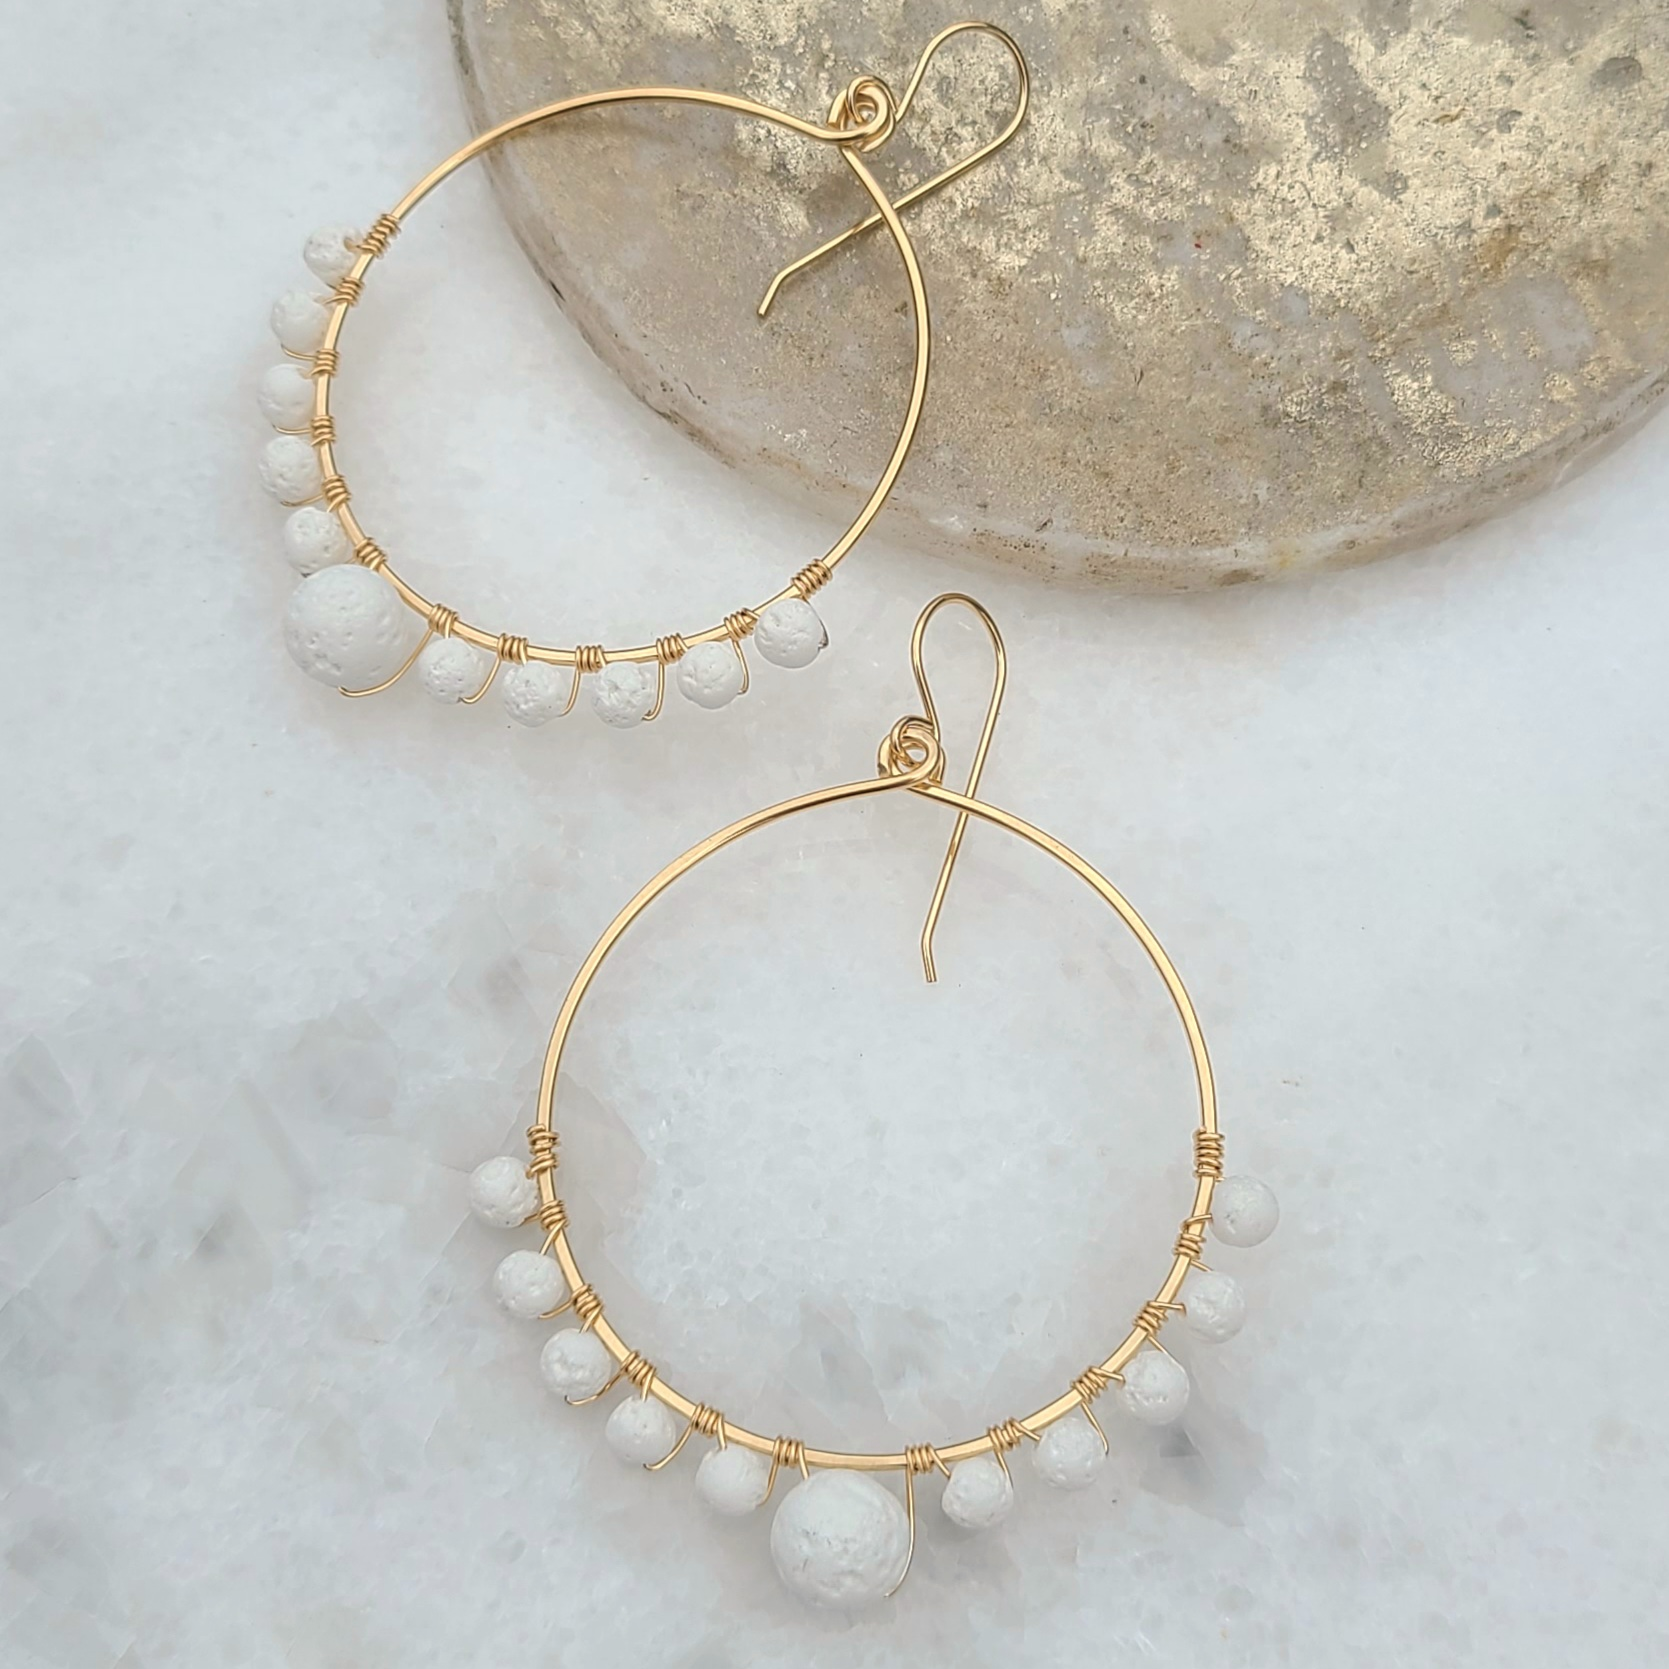 Anuket x James & Jezebelle Oasis Earrings demi-fine gold hoops with white lava rock stones for diffusing fragrance jewelry